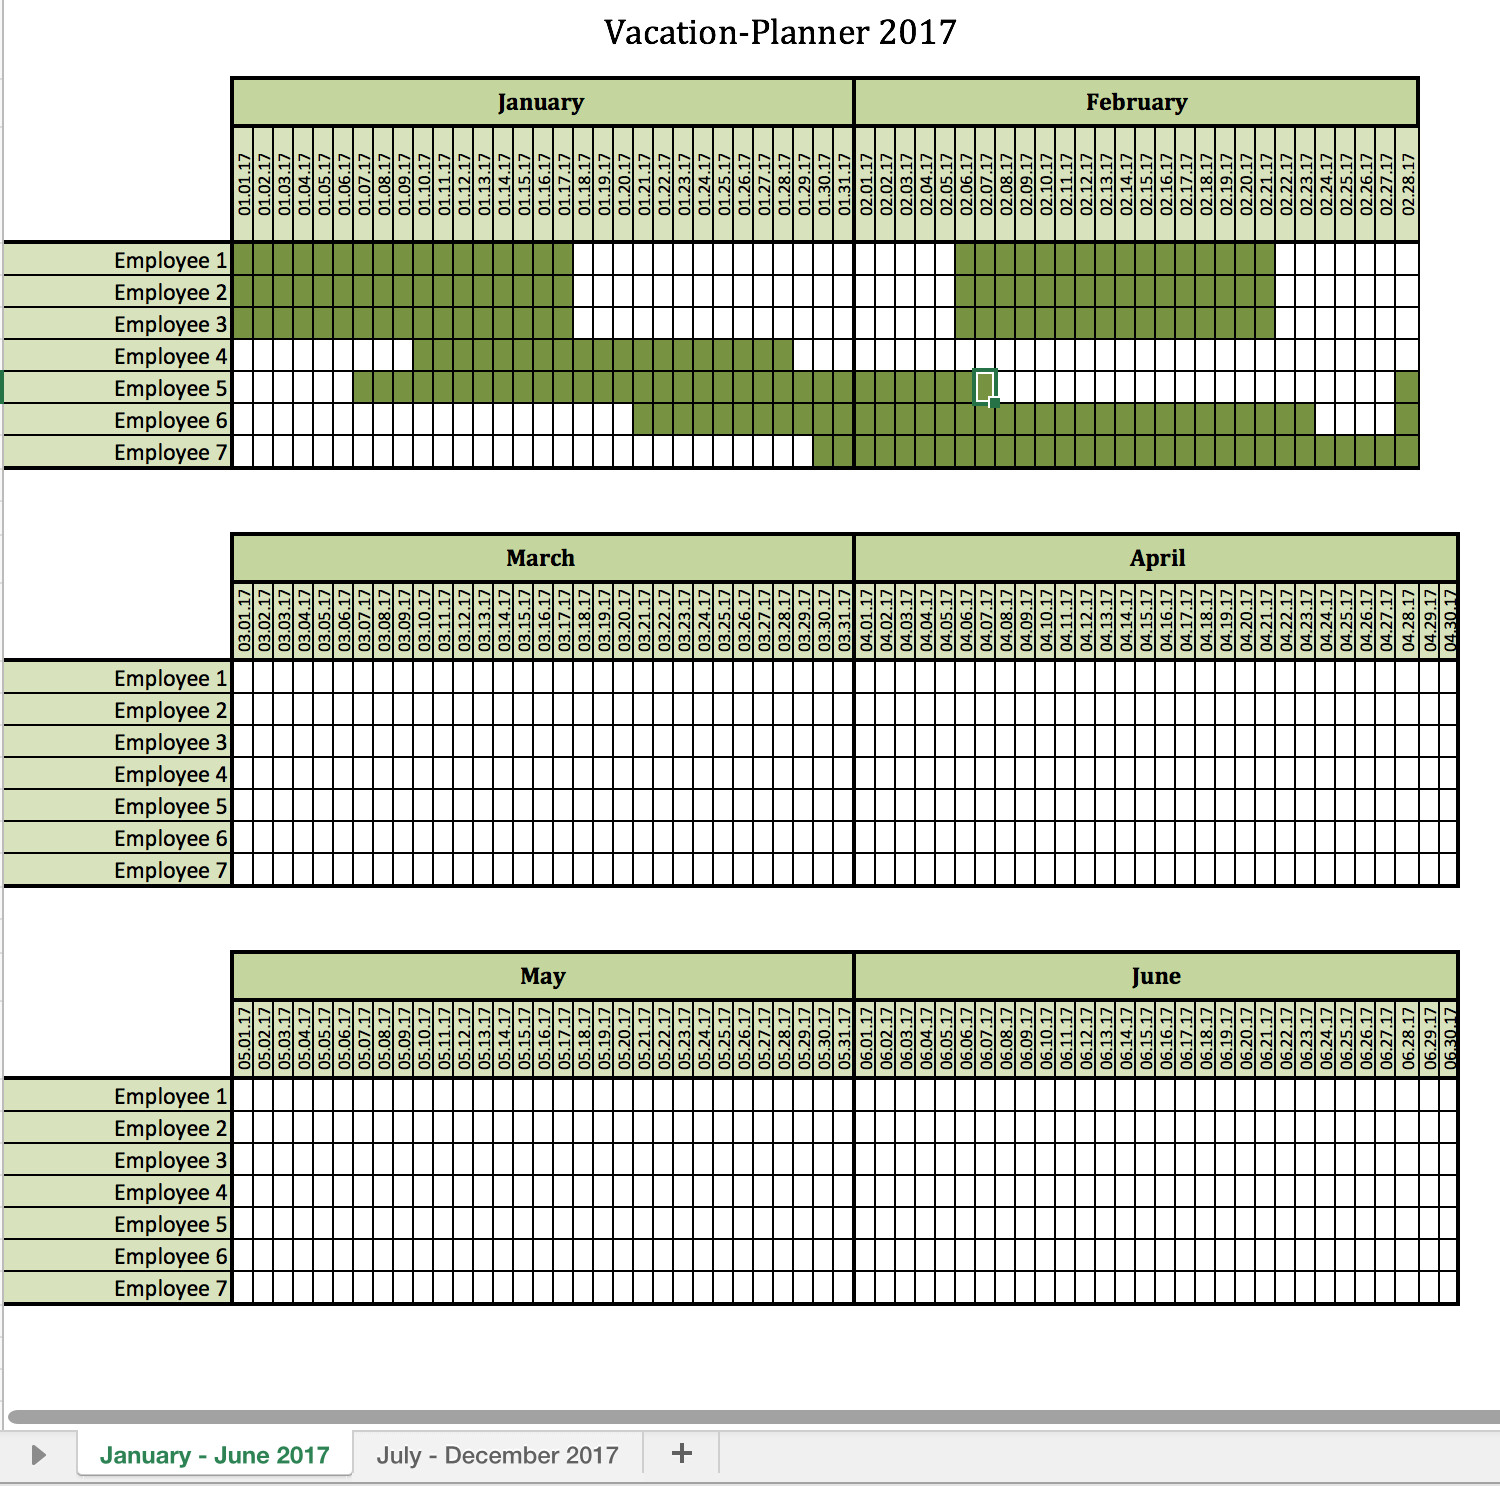 Employee Vacation Planner Template Excel Vacation Planner 2017